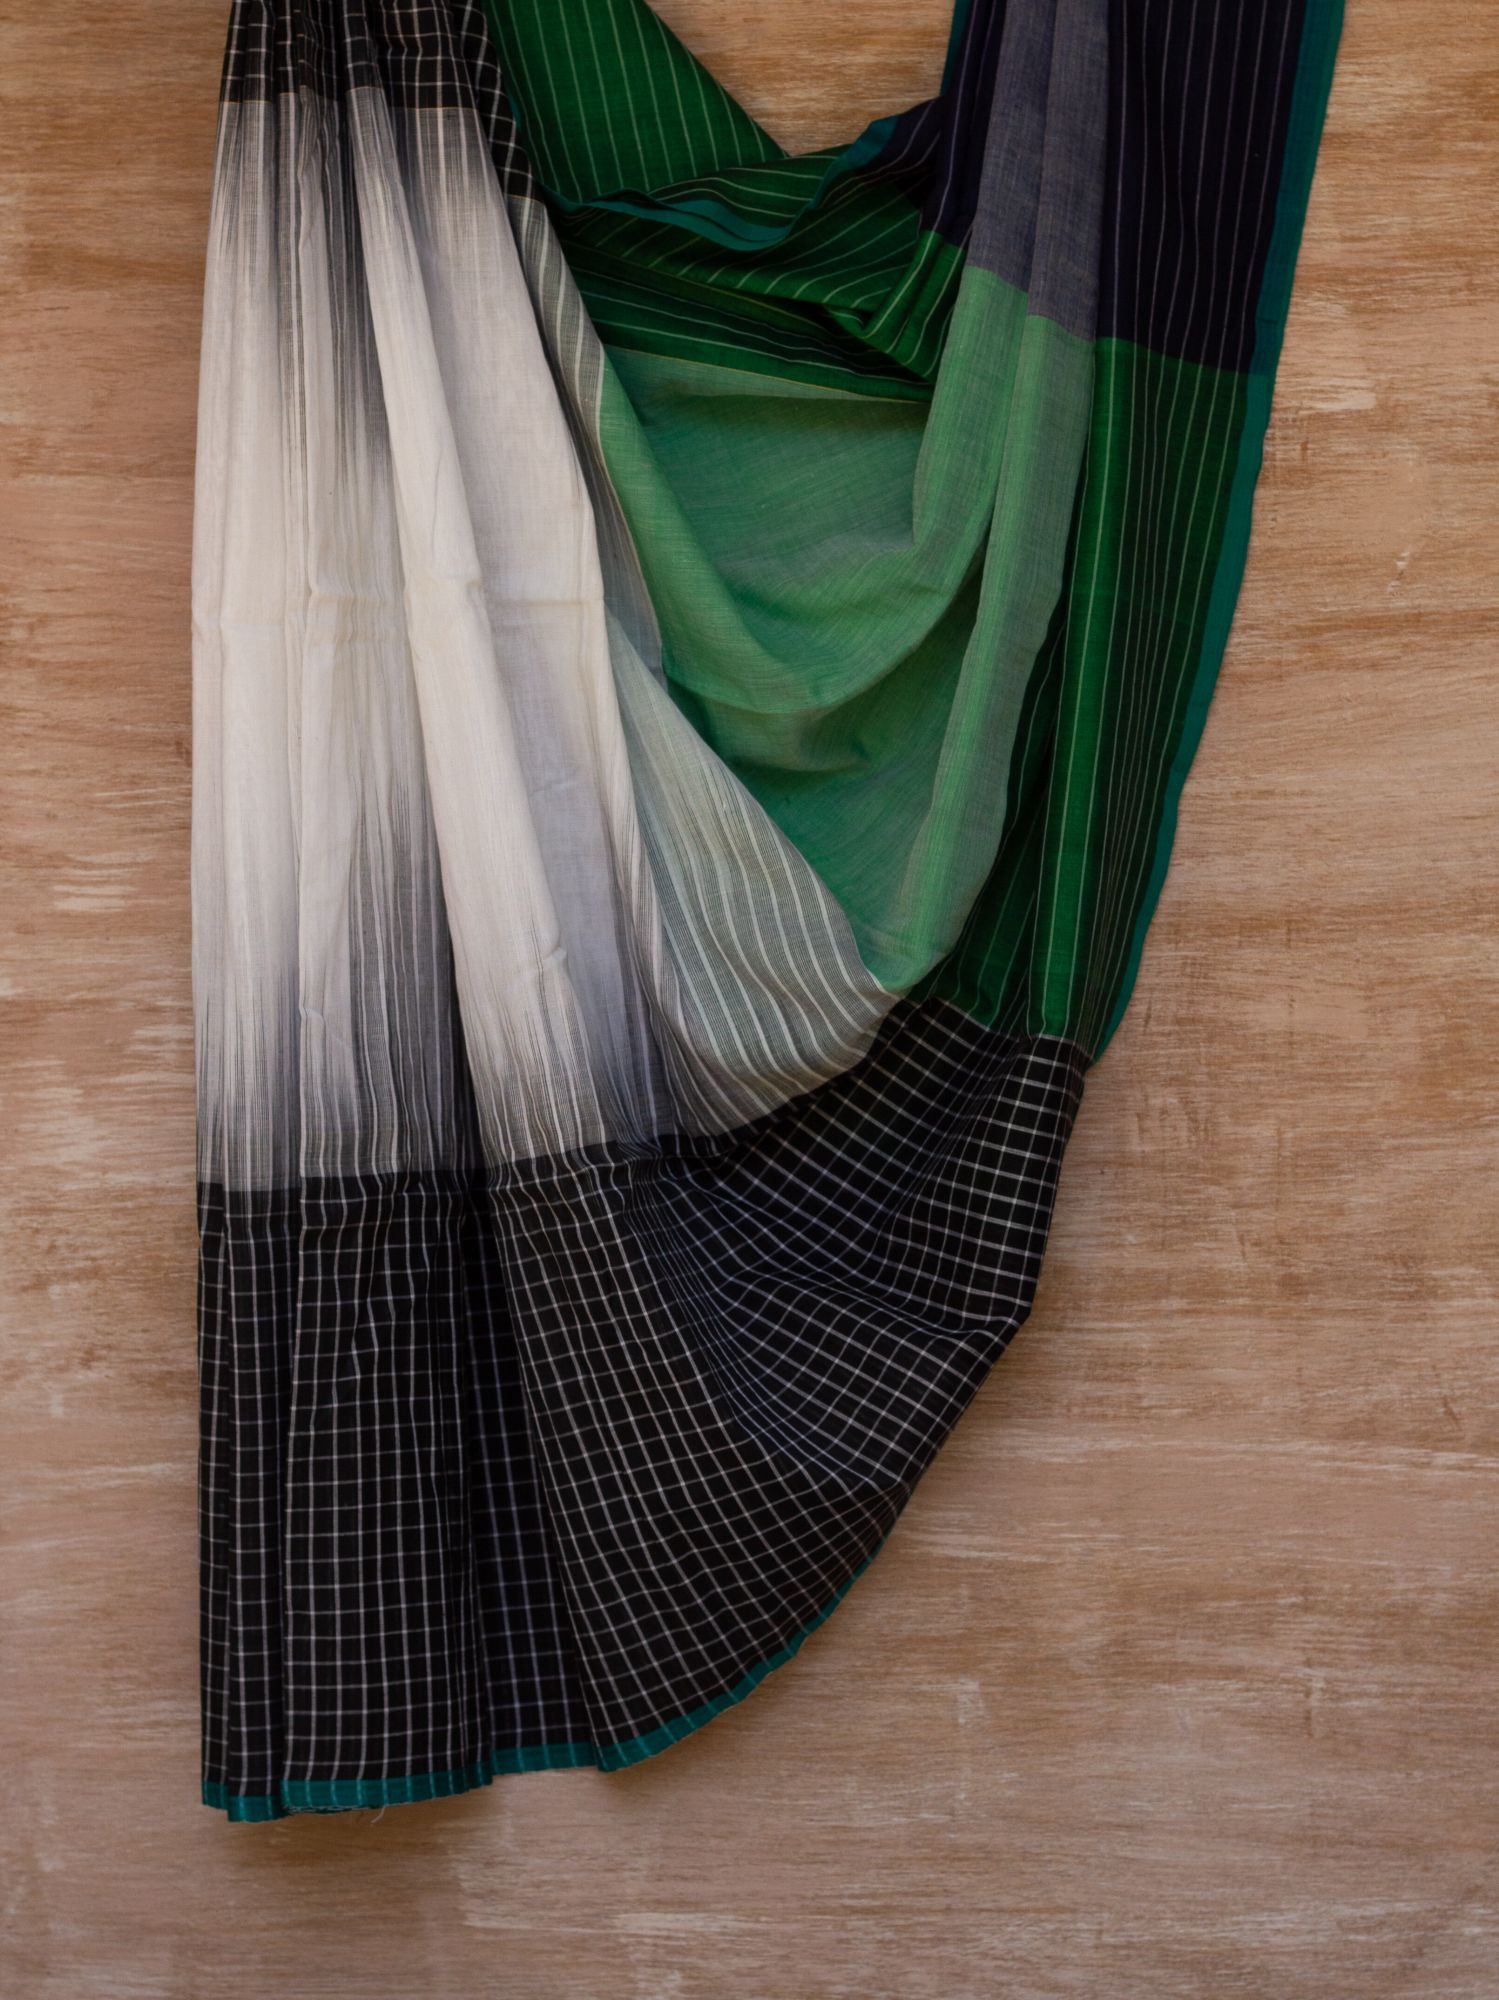 Black, White and Green Checkered Saree